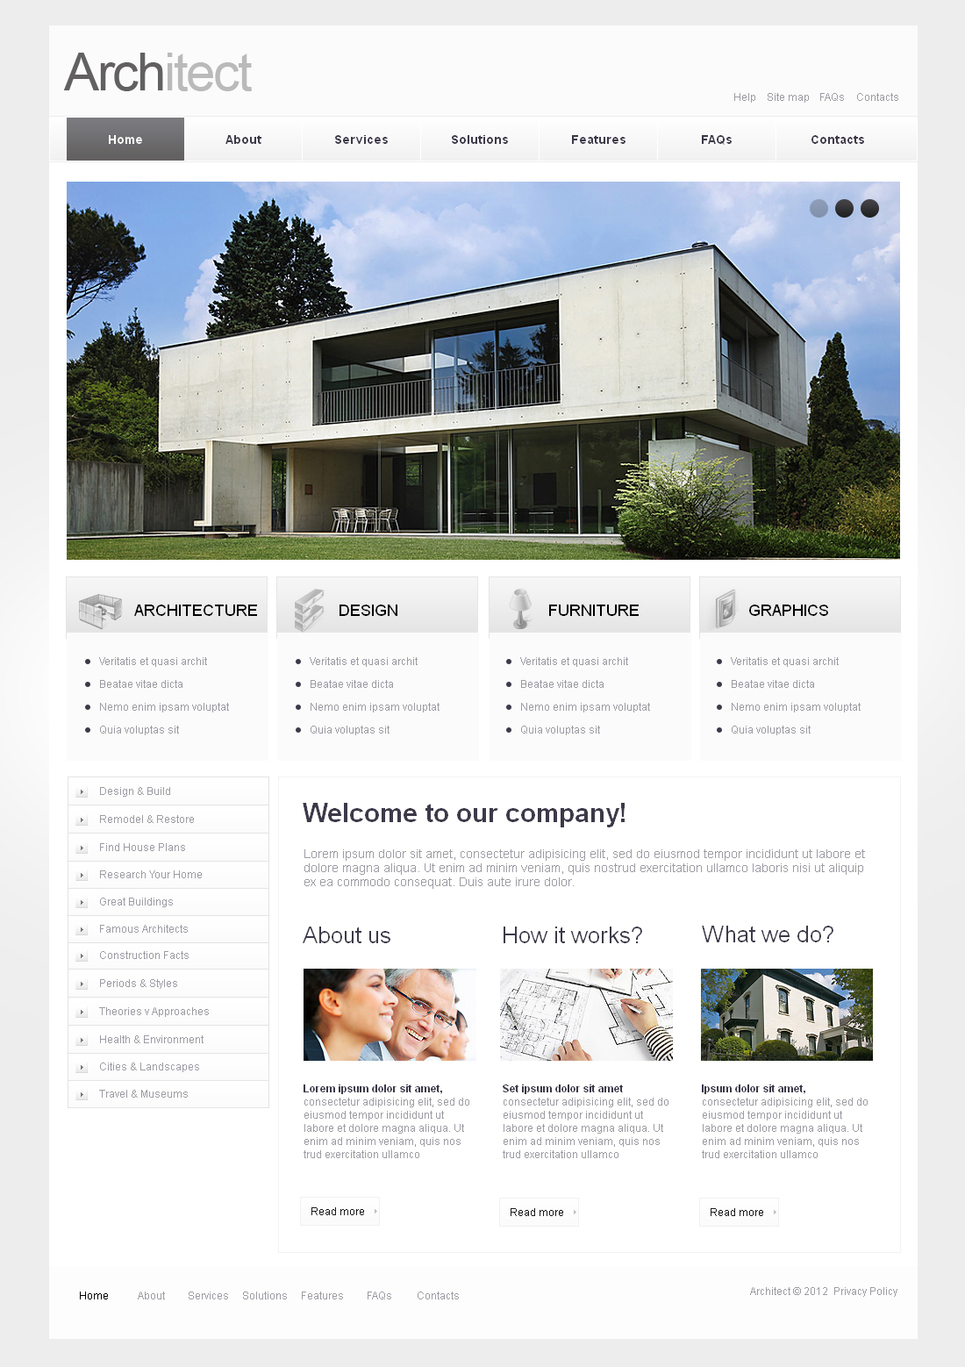 Clean Style Architecture Website Template with jQuery Image Slider - image